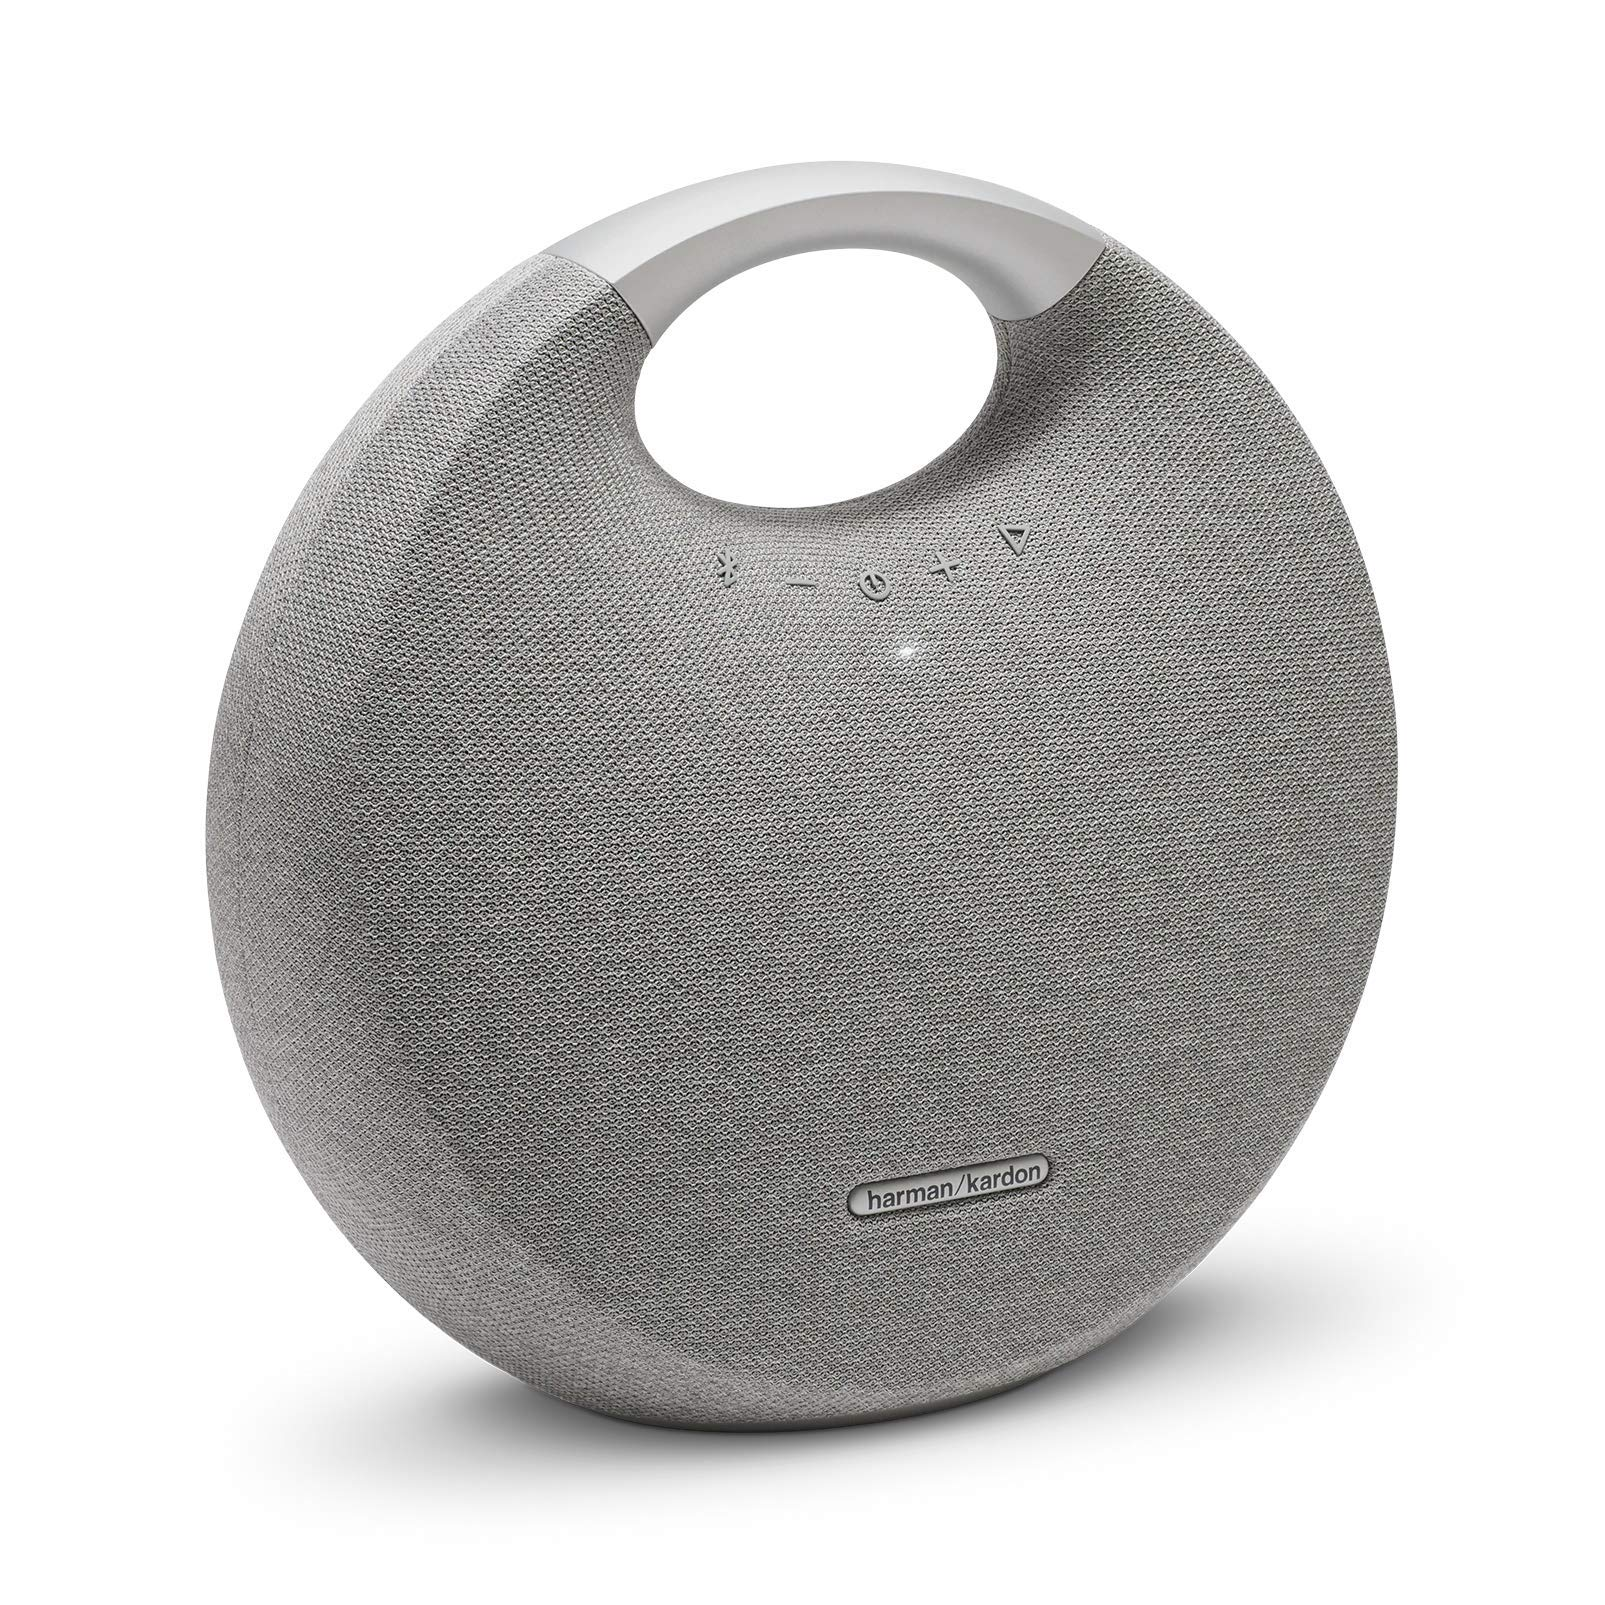 Harman Kardon Onyx5 Onyx Studio 5 Bluetooth Wireless Speaker, Gray by Harman Kardon (Image #1)